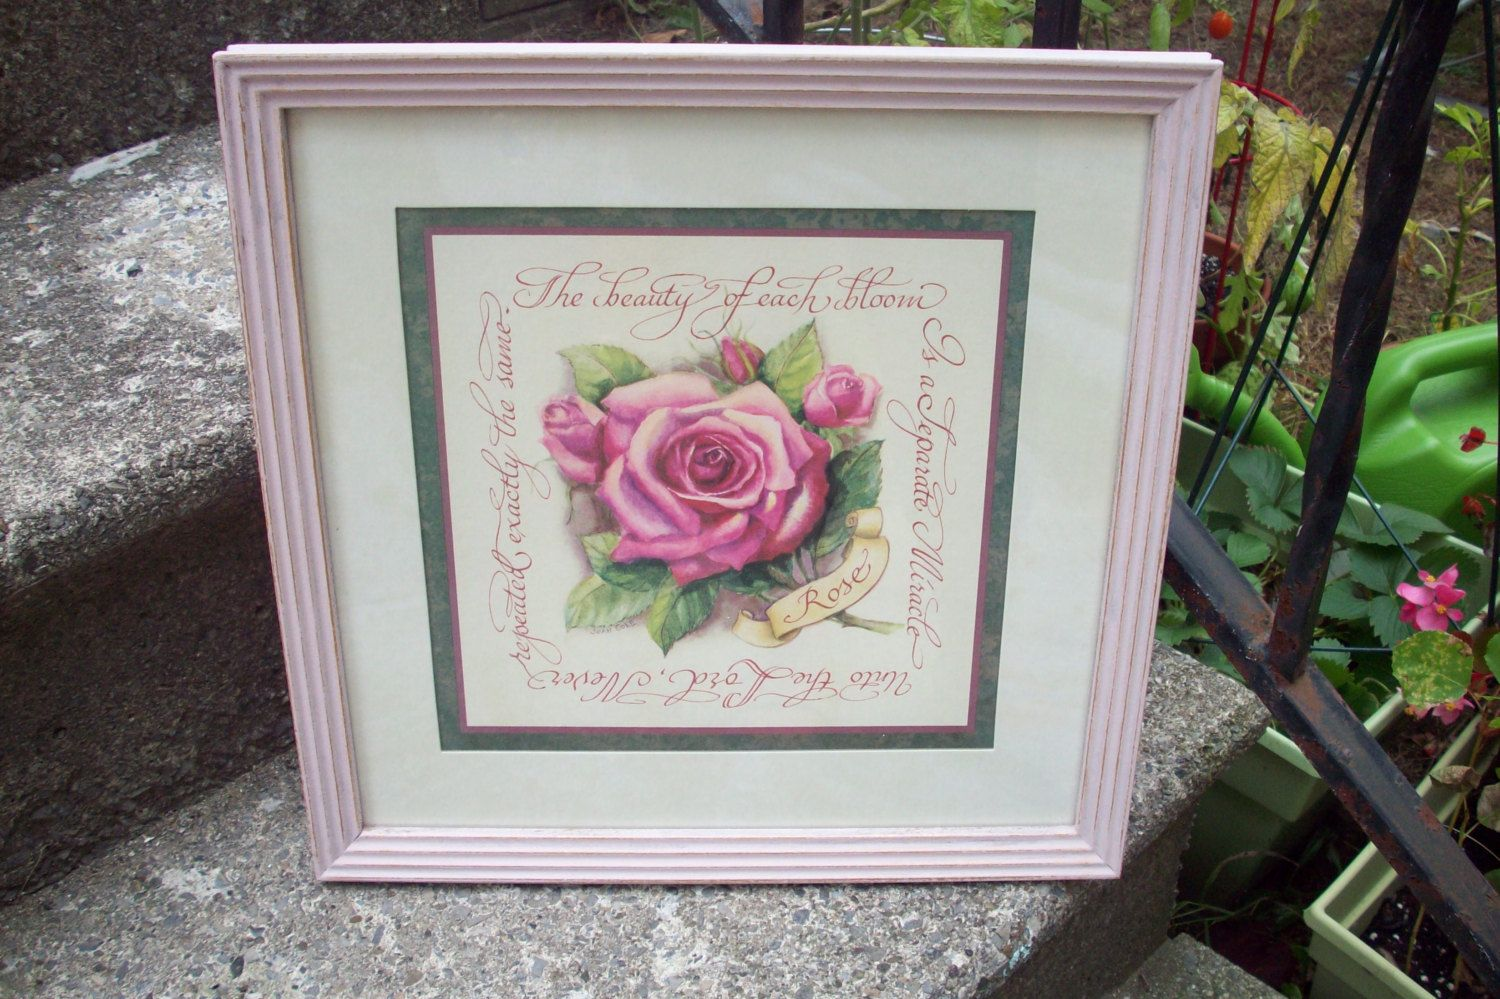 Home interiors and gifts framed art - Home Interiors And Gifts Framed Floral Wall Plaque Hand Painted Wood Frame Annie Sloan Antoinette